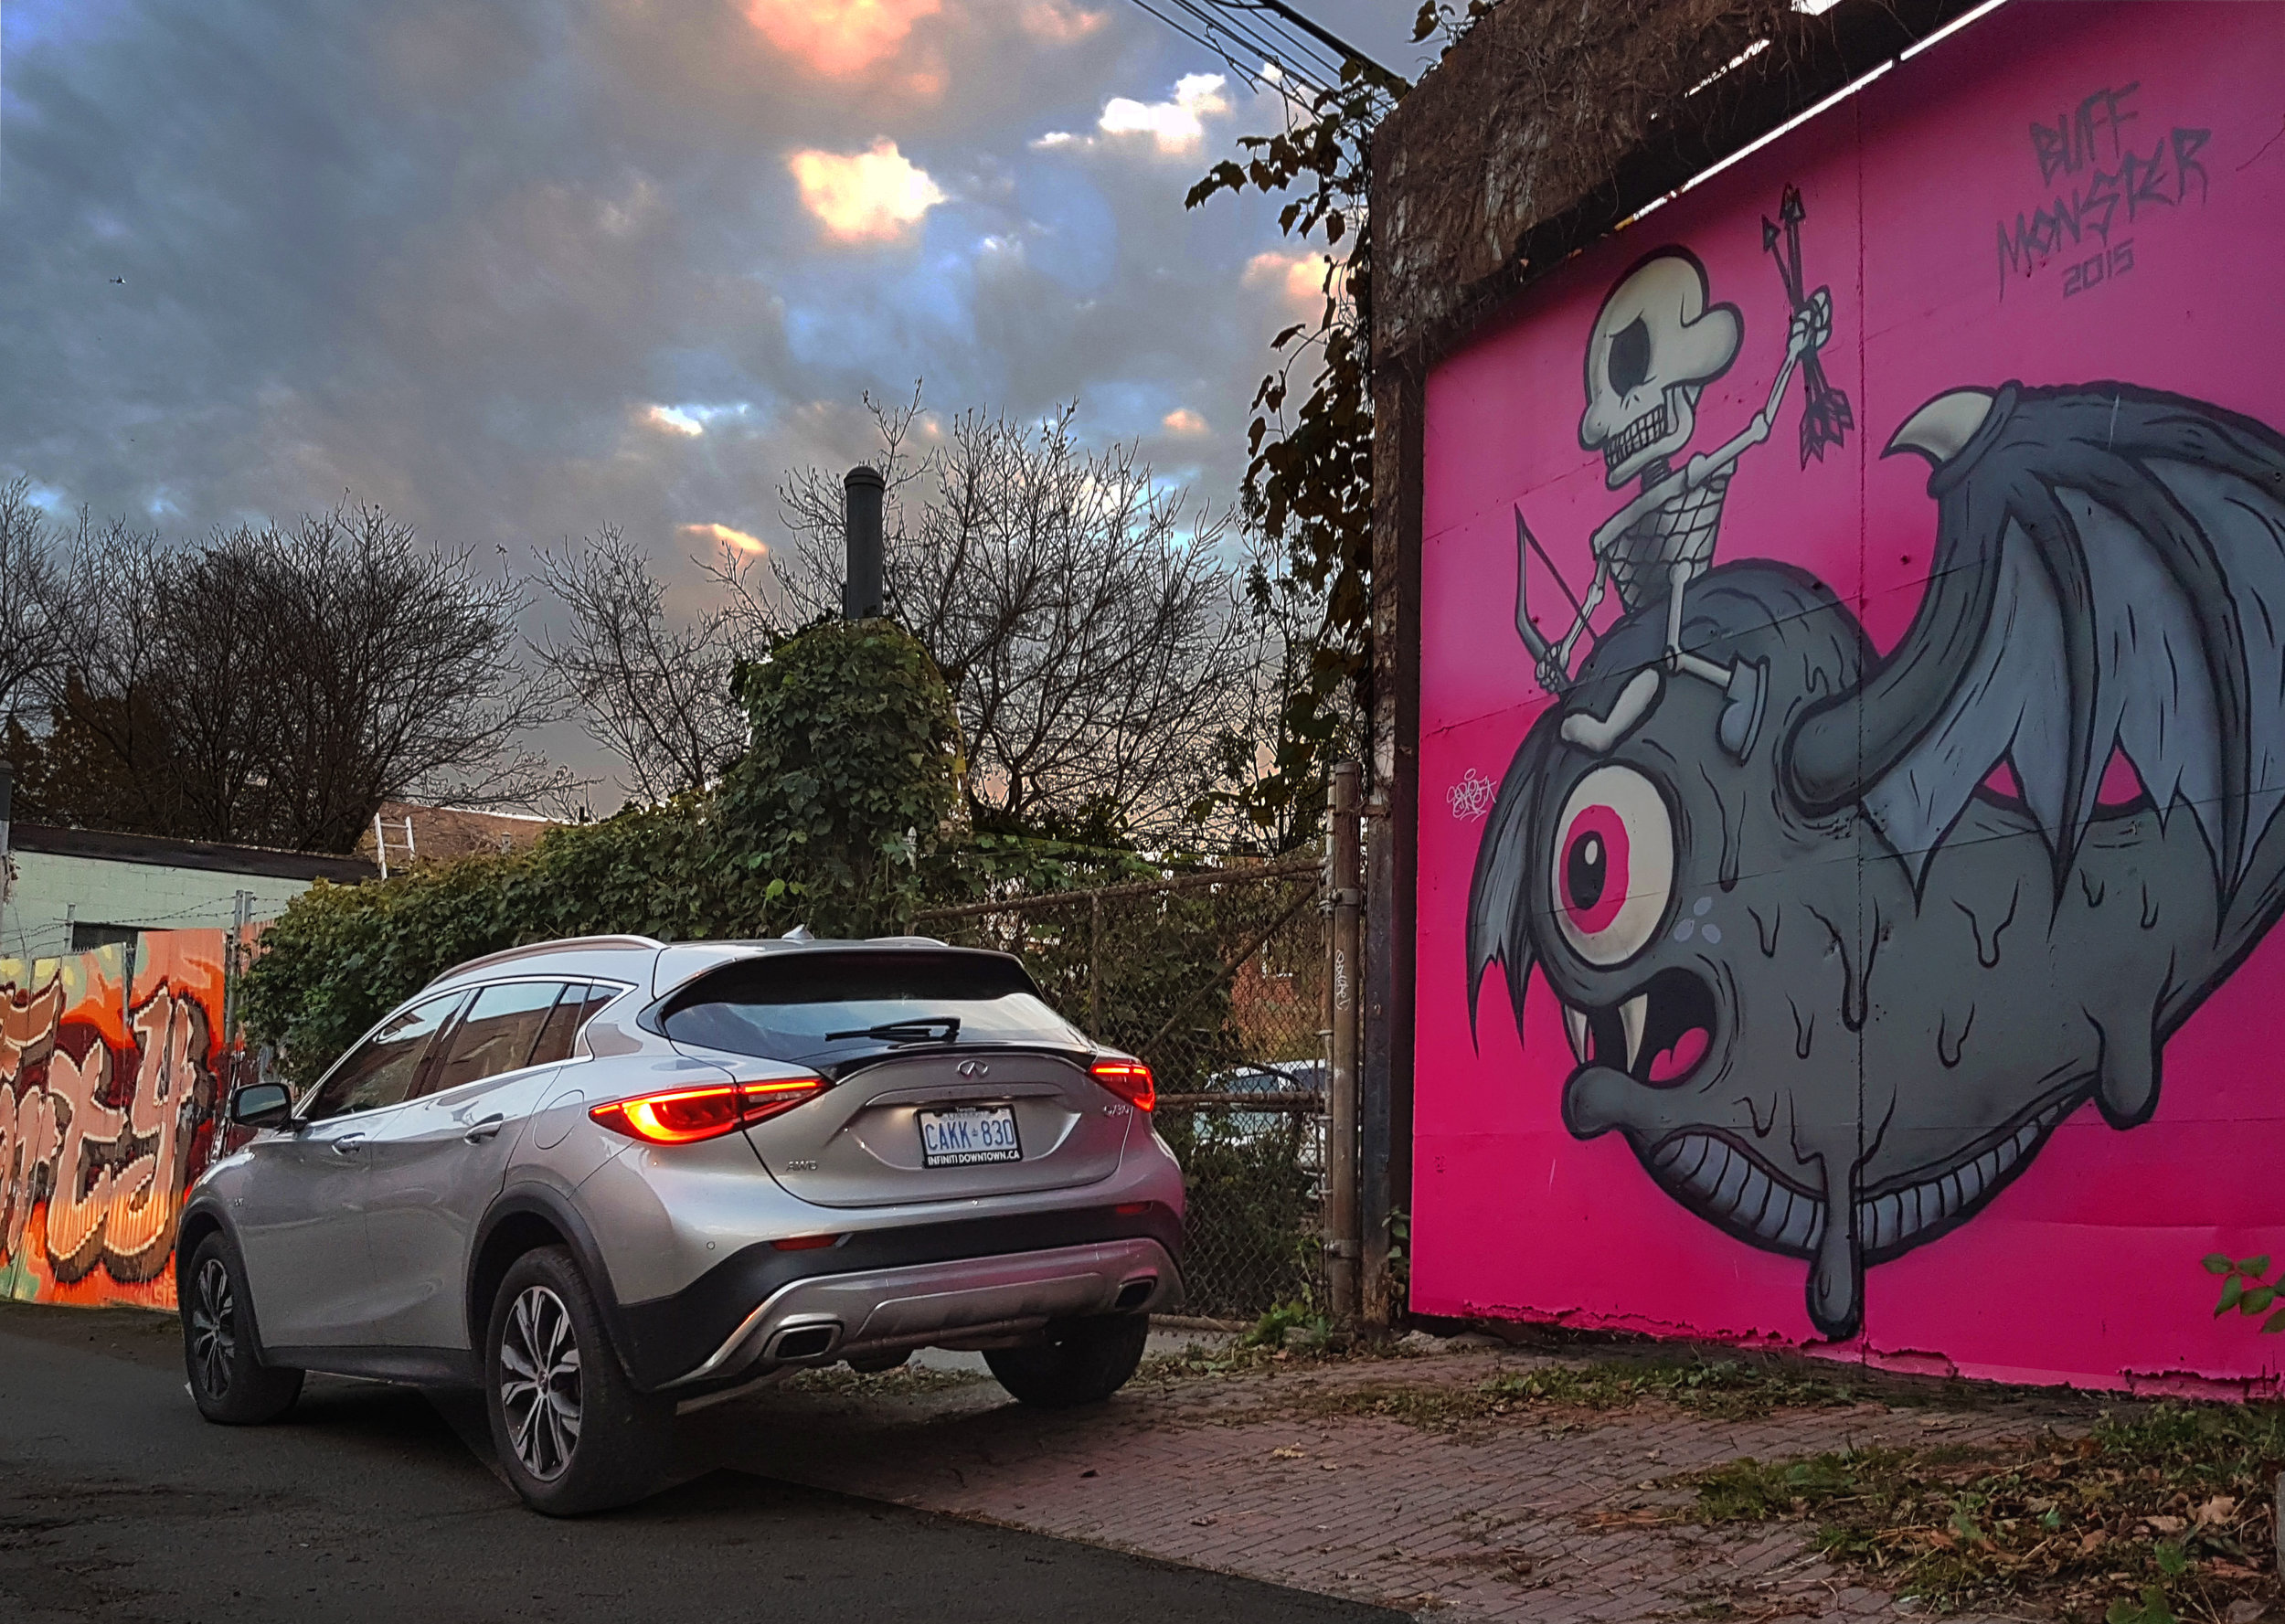 The QX30's buff bod was a real head turner in the back alleys of Toronto.